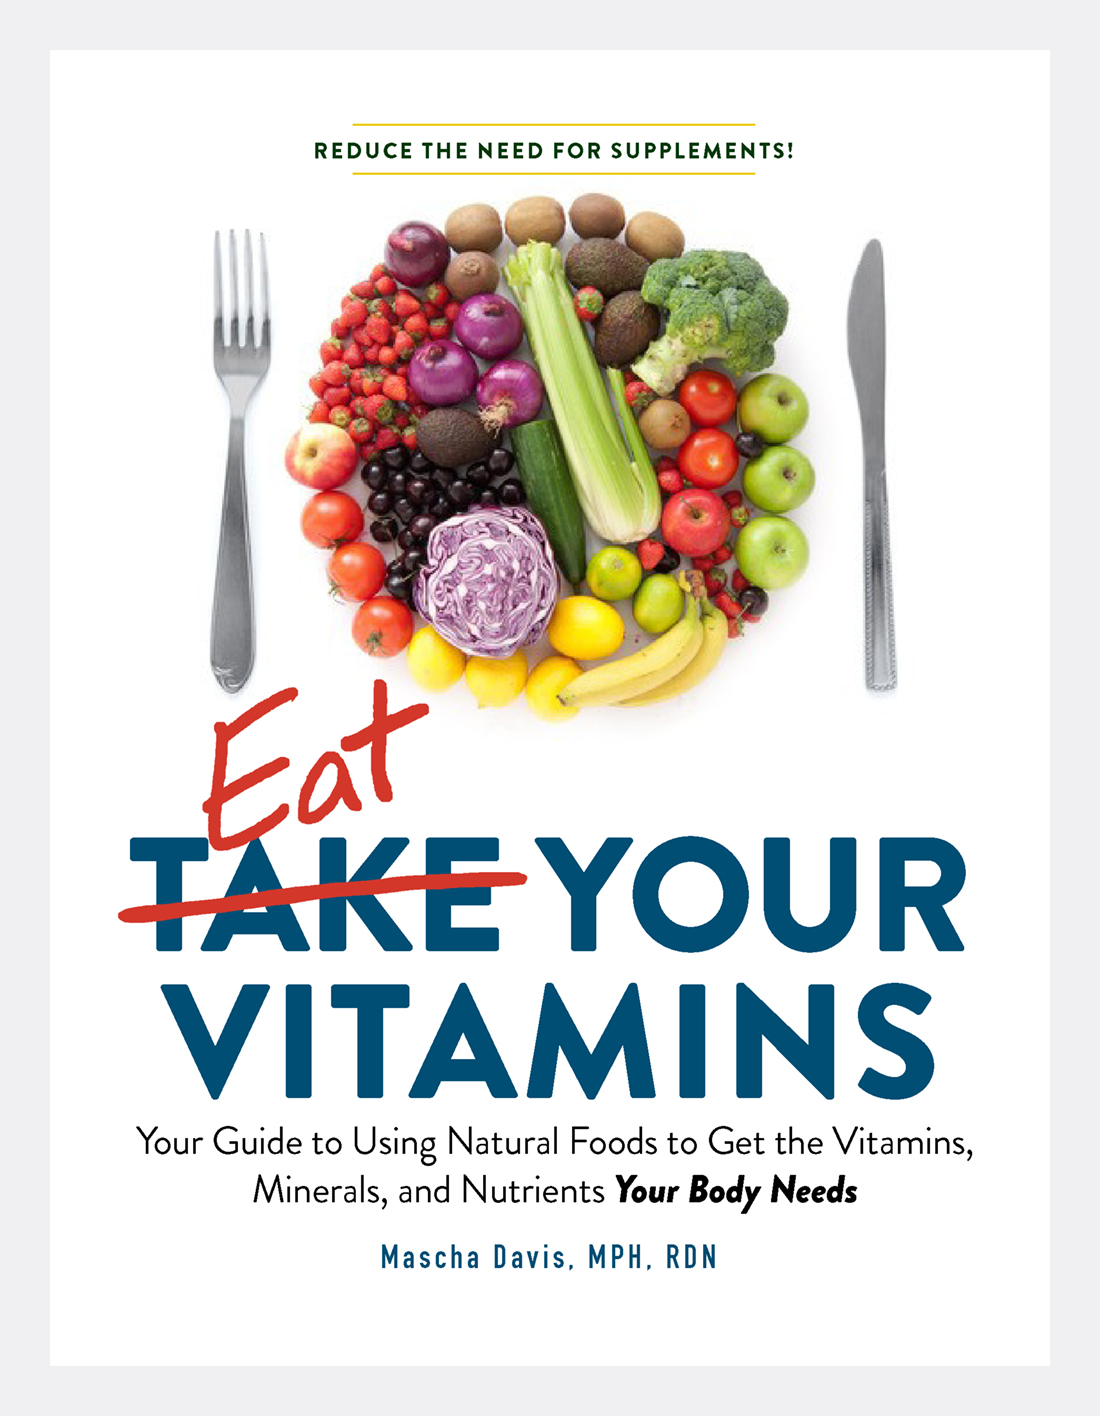 Pre-Order Mascha's New Book! - The A-to-Z guide to essential vitamins, minerals, and nutrients, so you can ditch synthetic supplements and promote health naturally with nourishing foods.